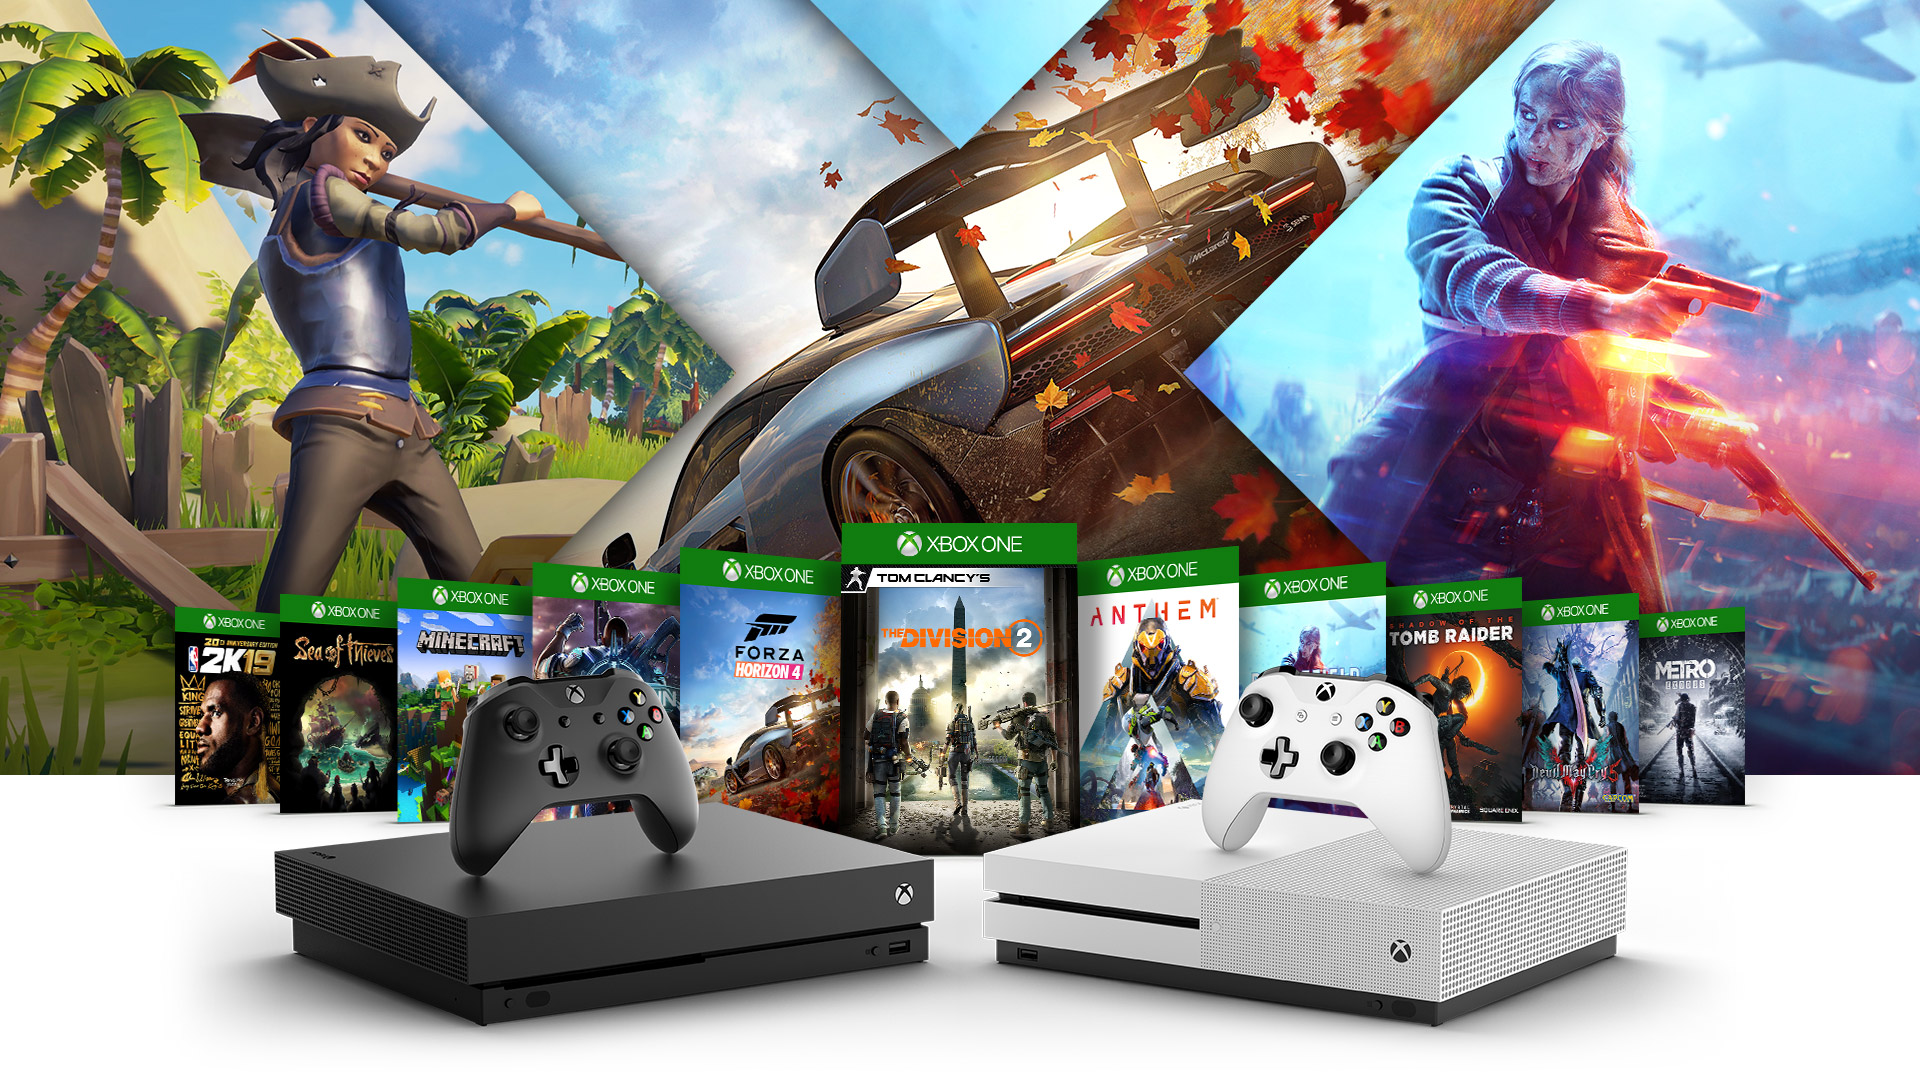 Seitenansicht von Xbox One X, Xbox One S und Xbox One S All Digital Edition umgeben von Boxshots von Crackdown 3, Sea of Thieves, Minecraft, Madden 19, 2K19, Forza Horizon 4, Fallout 76, Battlefield Five, Shadow of the Tomb Raider, PlayUnknown Battlegrounds und State of Decay 2